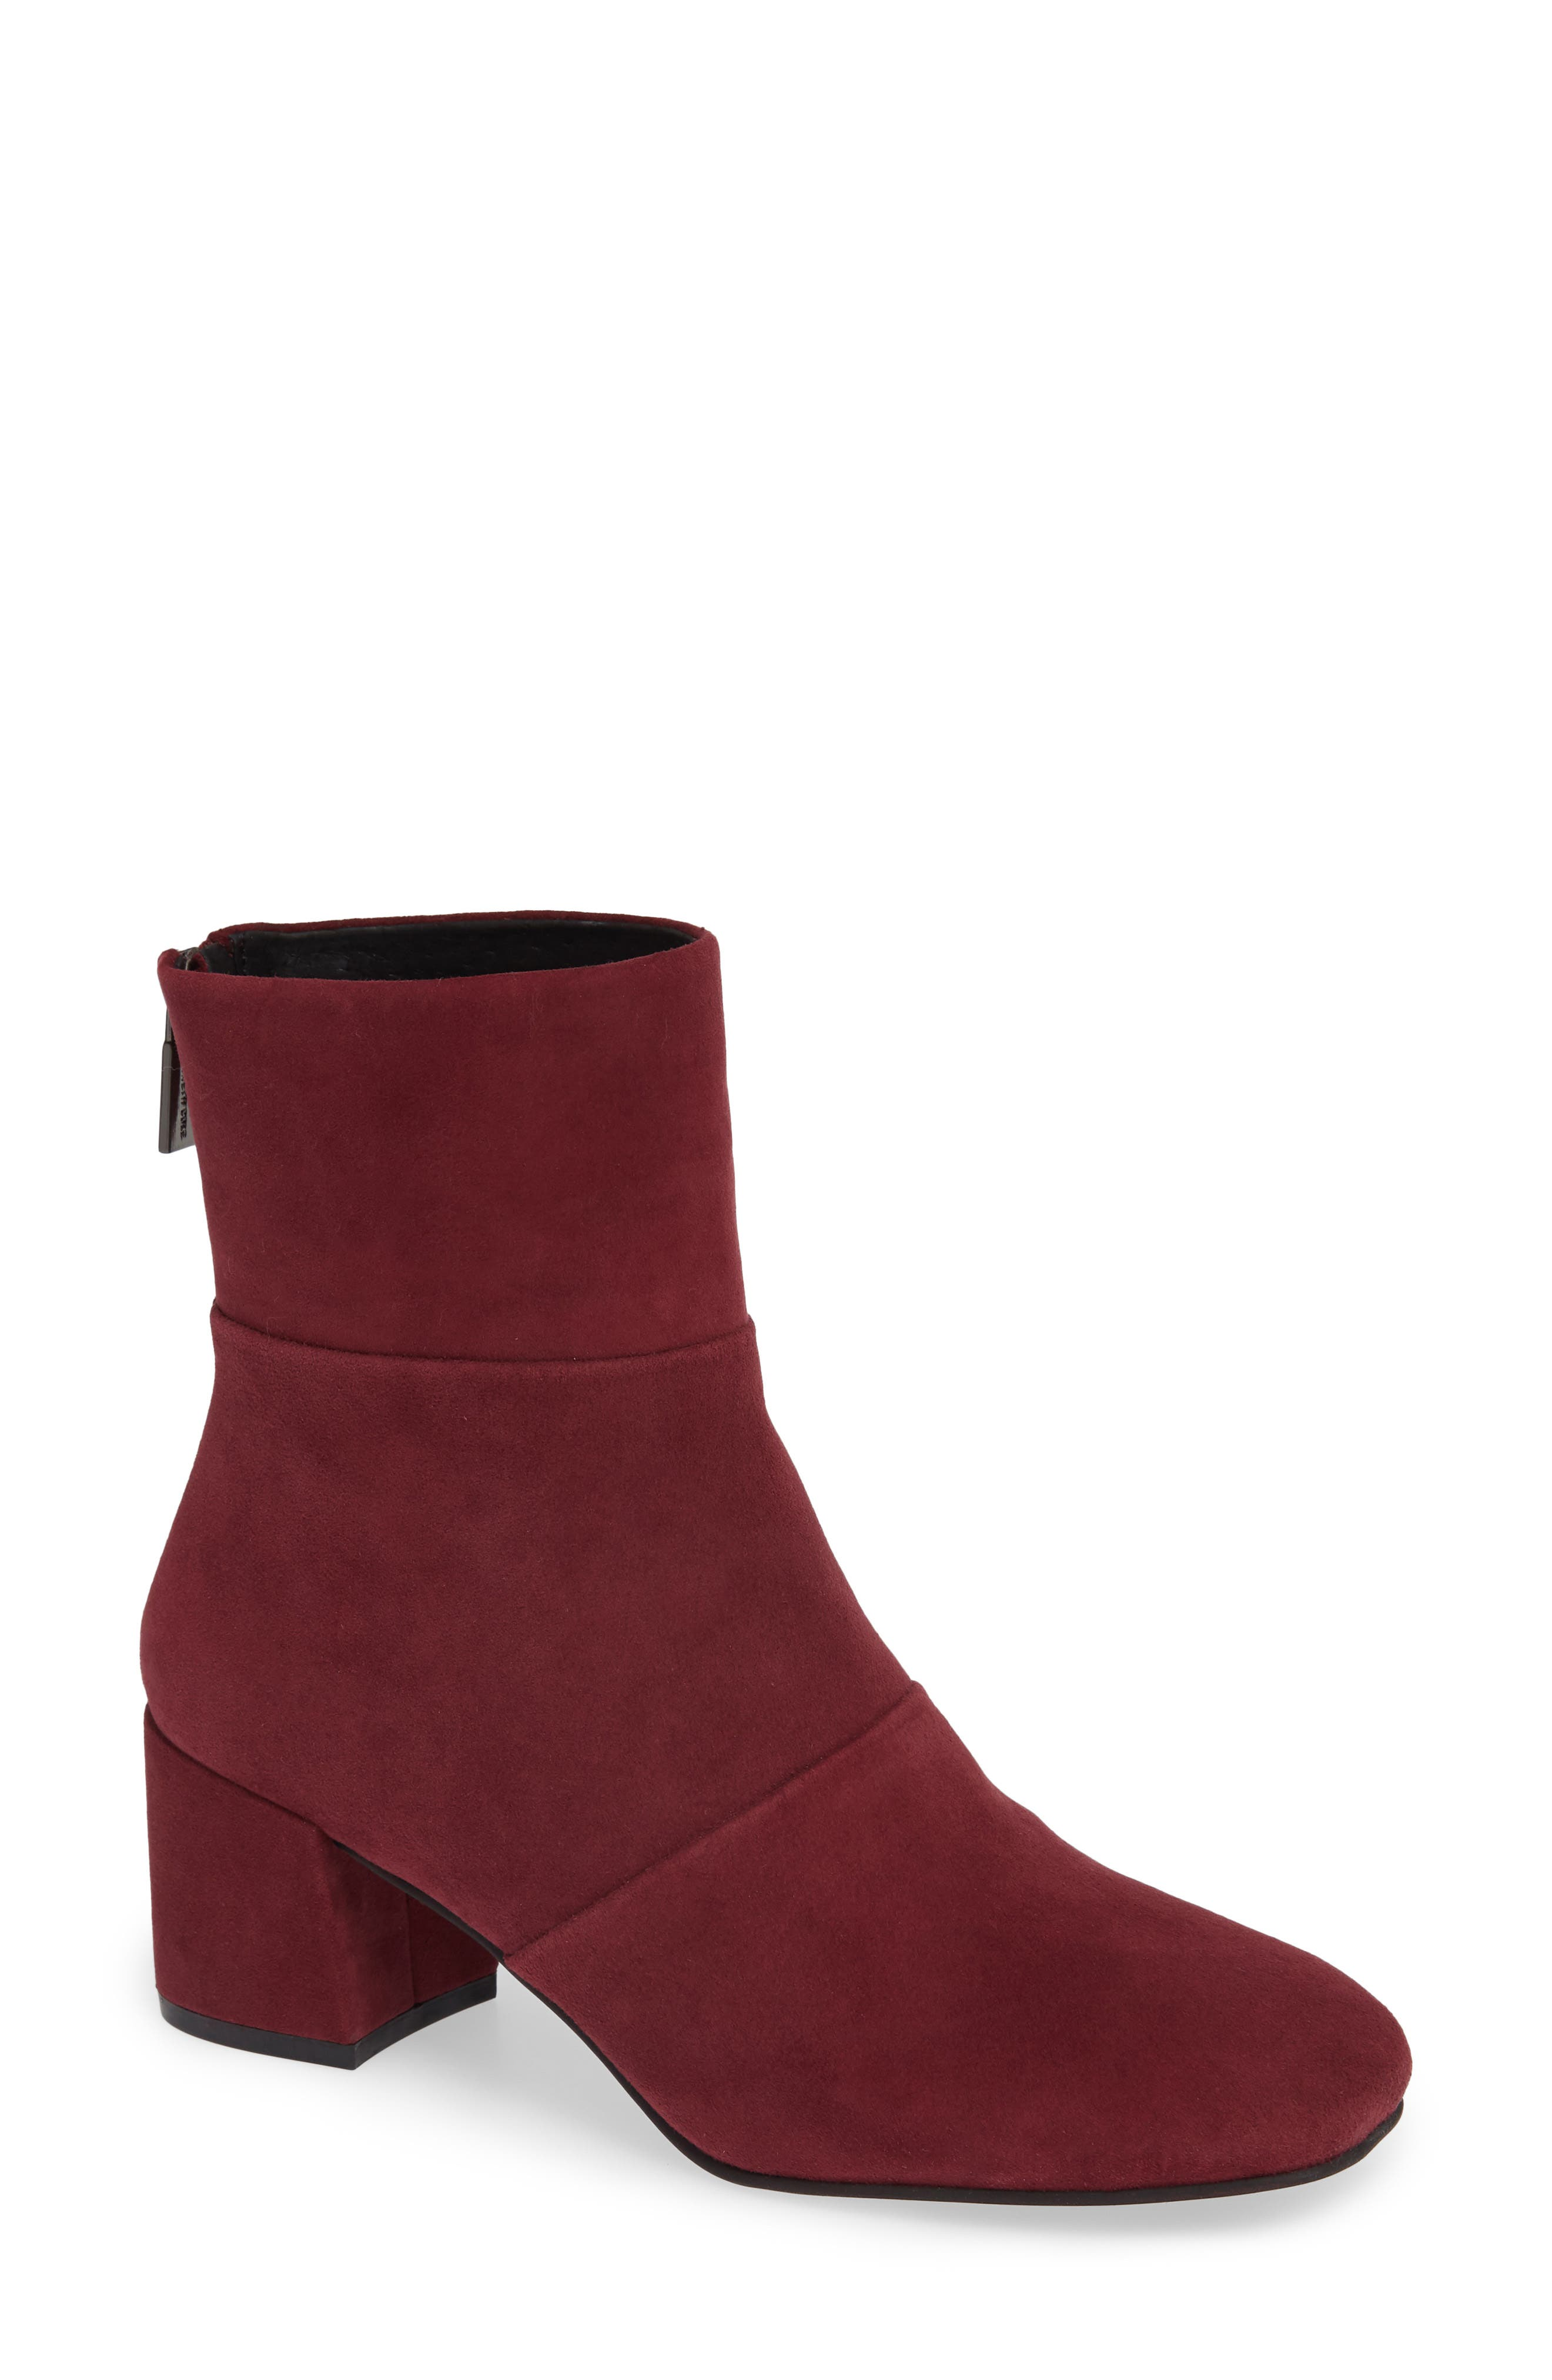 Kenneth Cole New York Eryc Bootie, Red